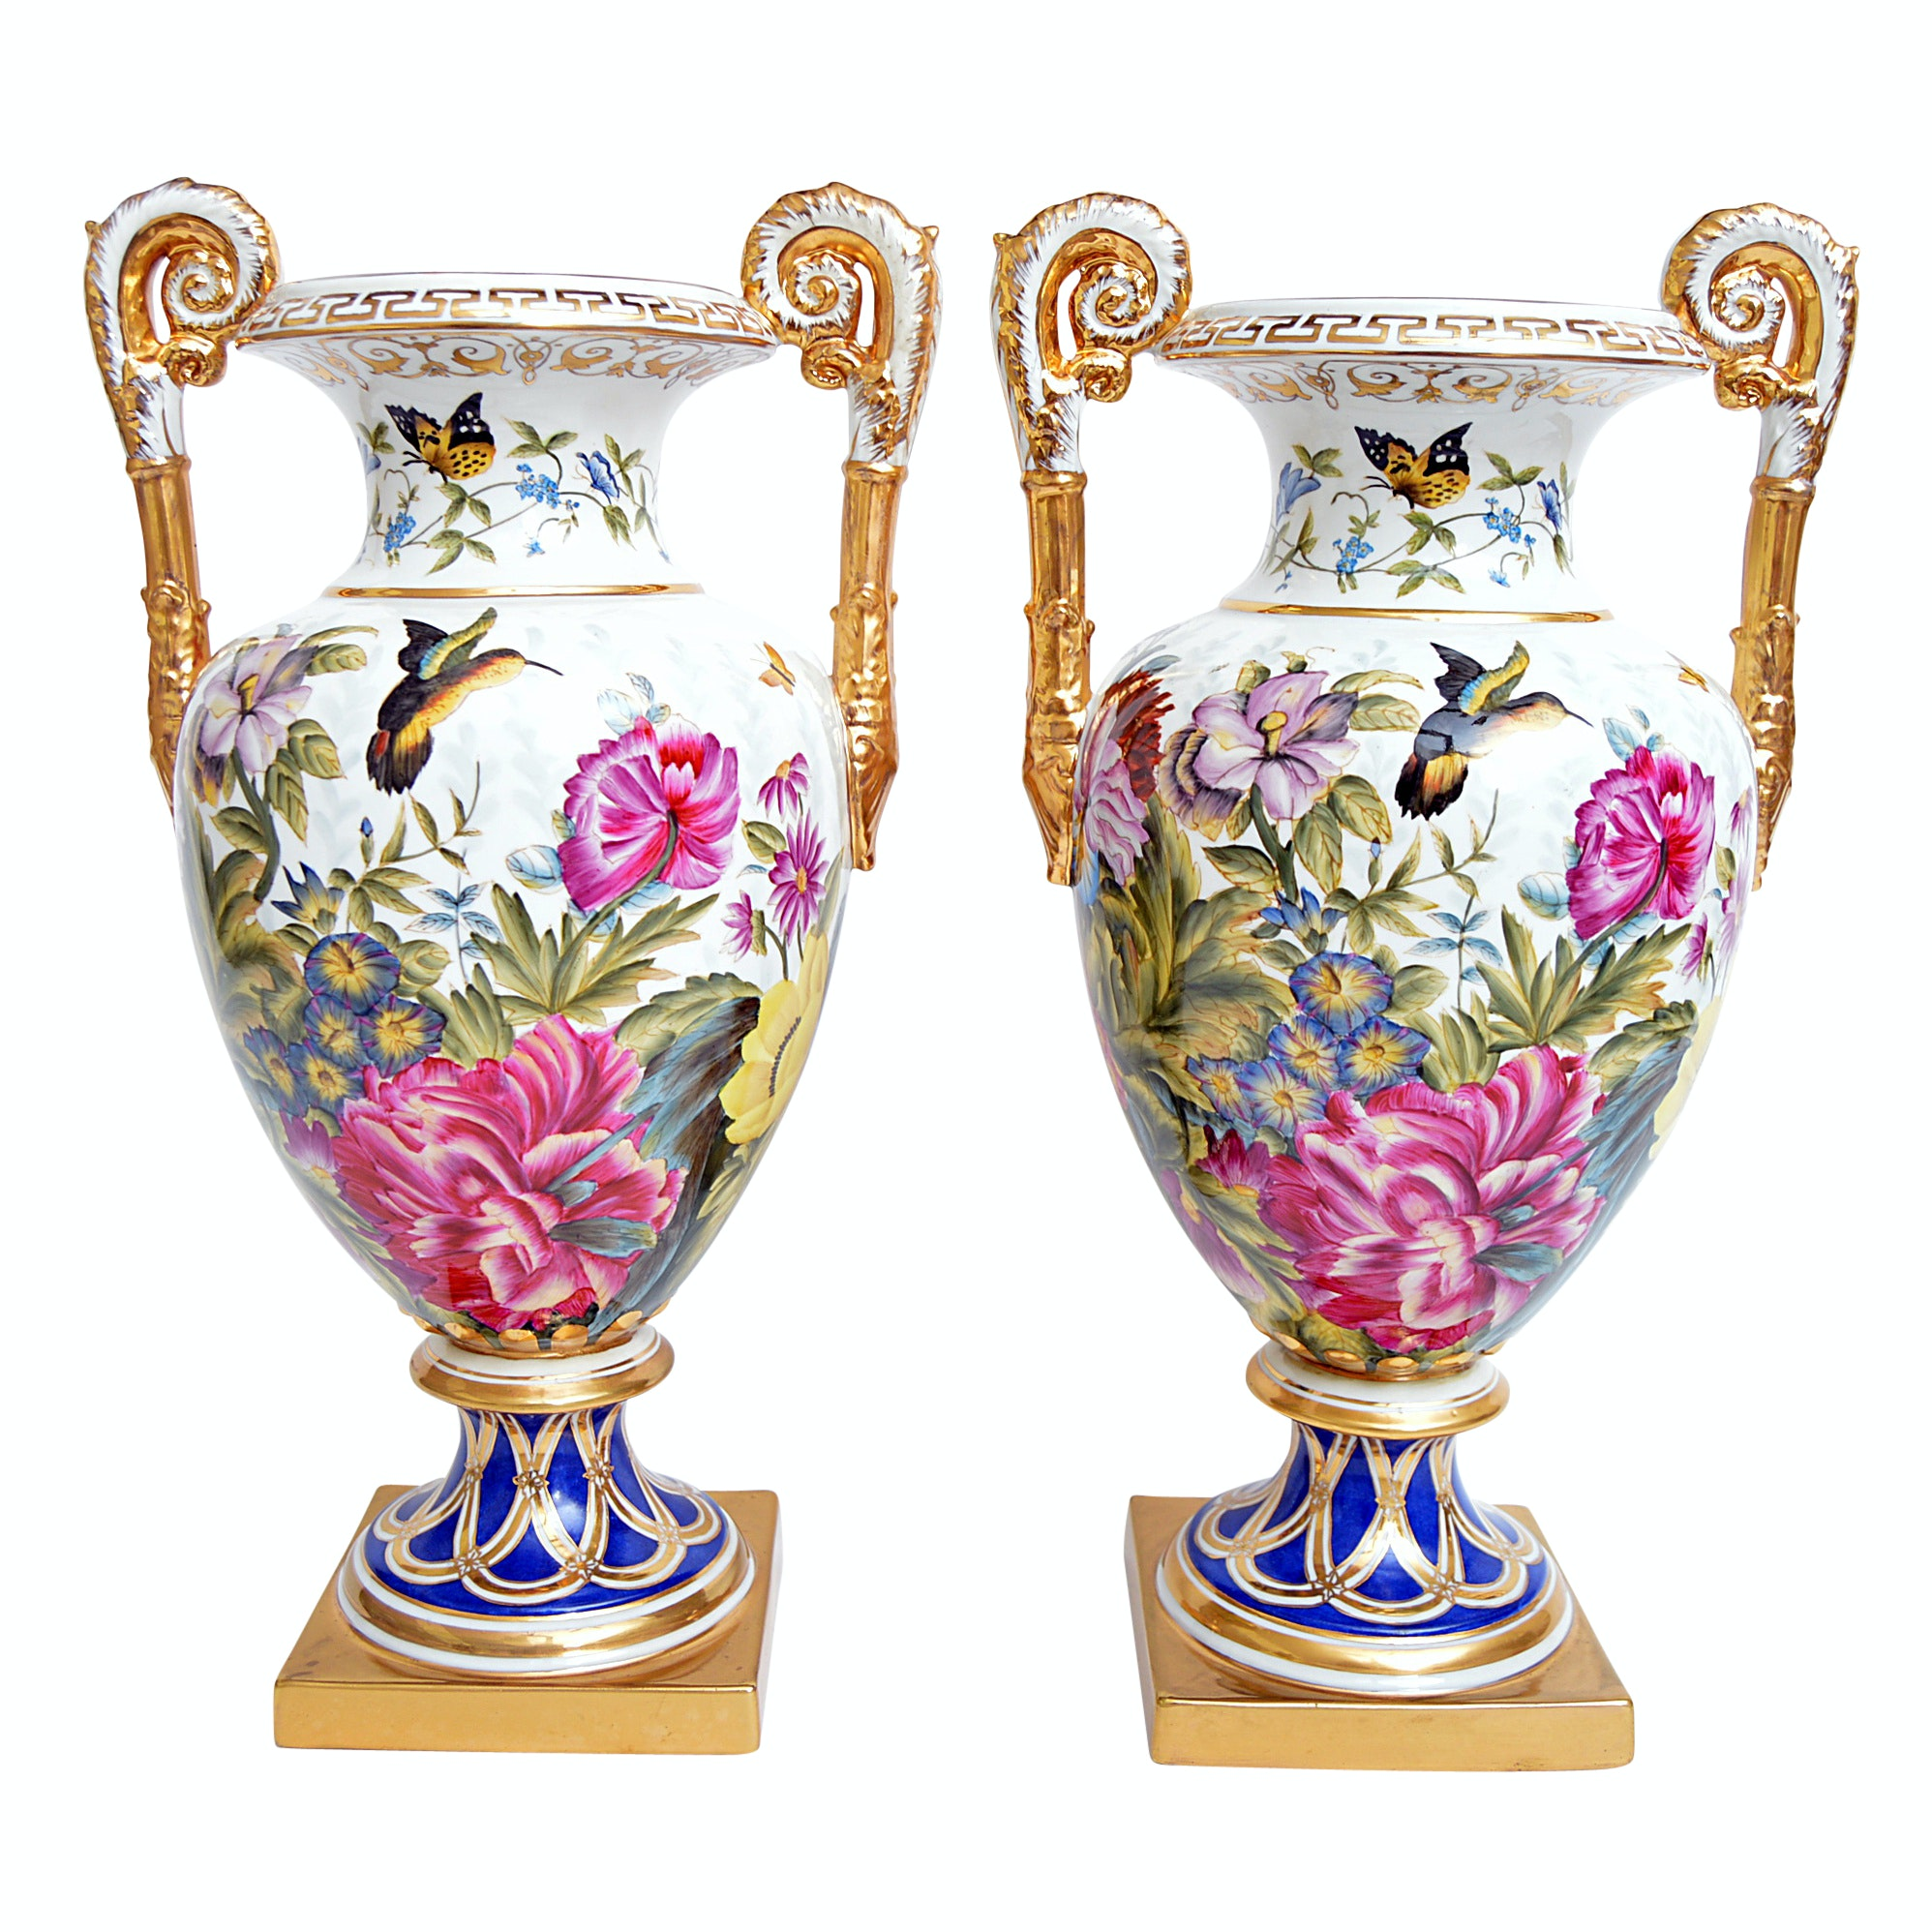 Pair of Chelsea House Old Paris Style Floral-Decorated Porcelain Urns